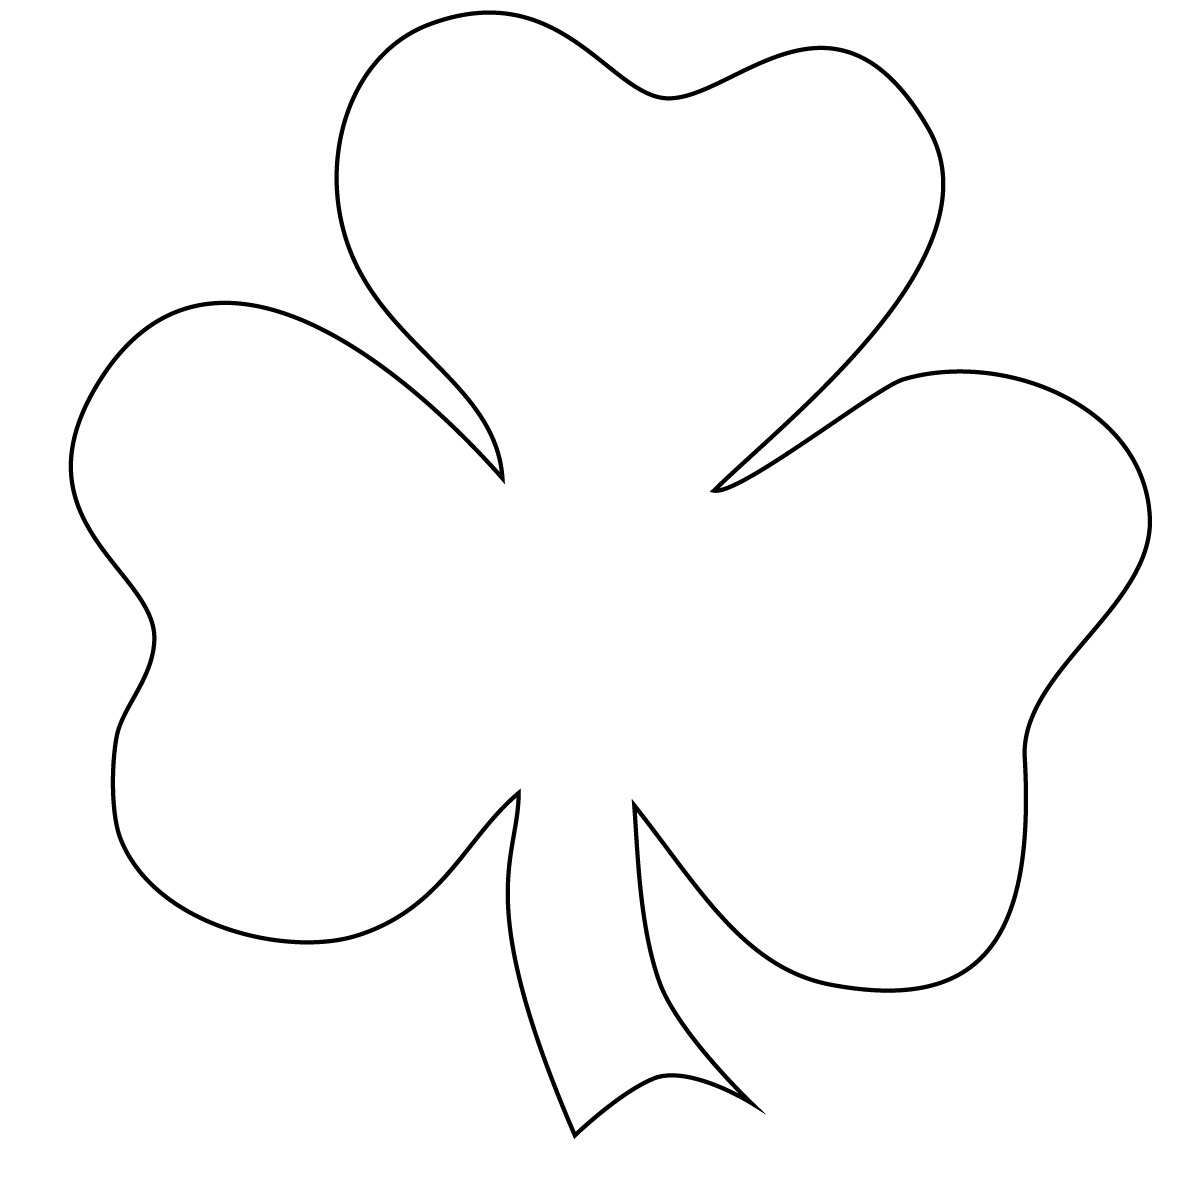 Shamrock Outline Printable.